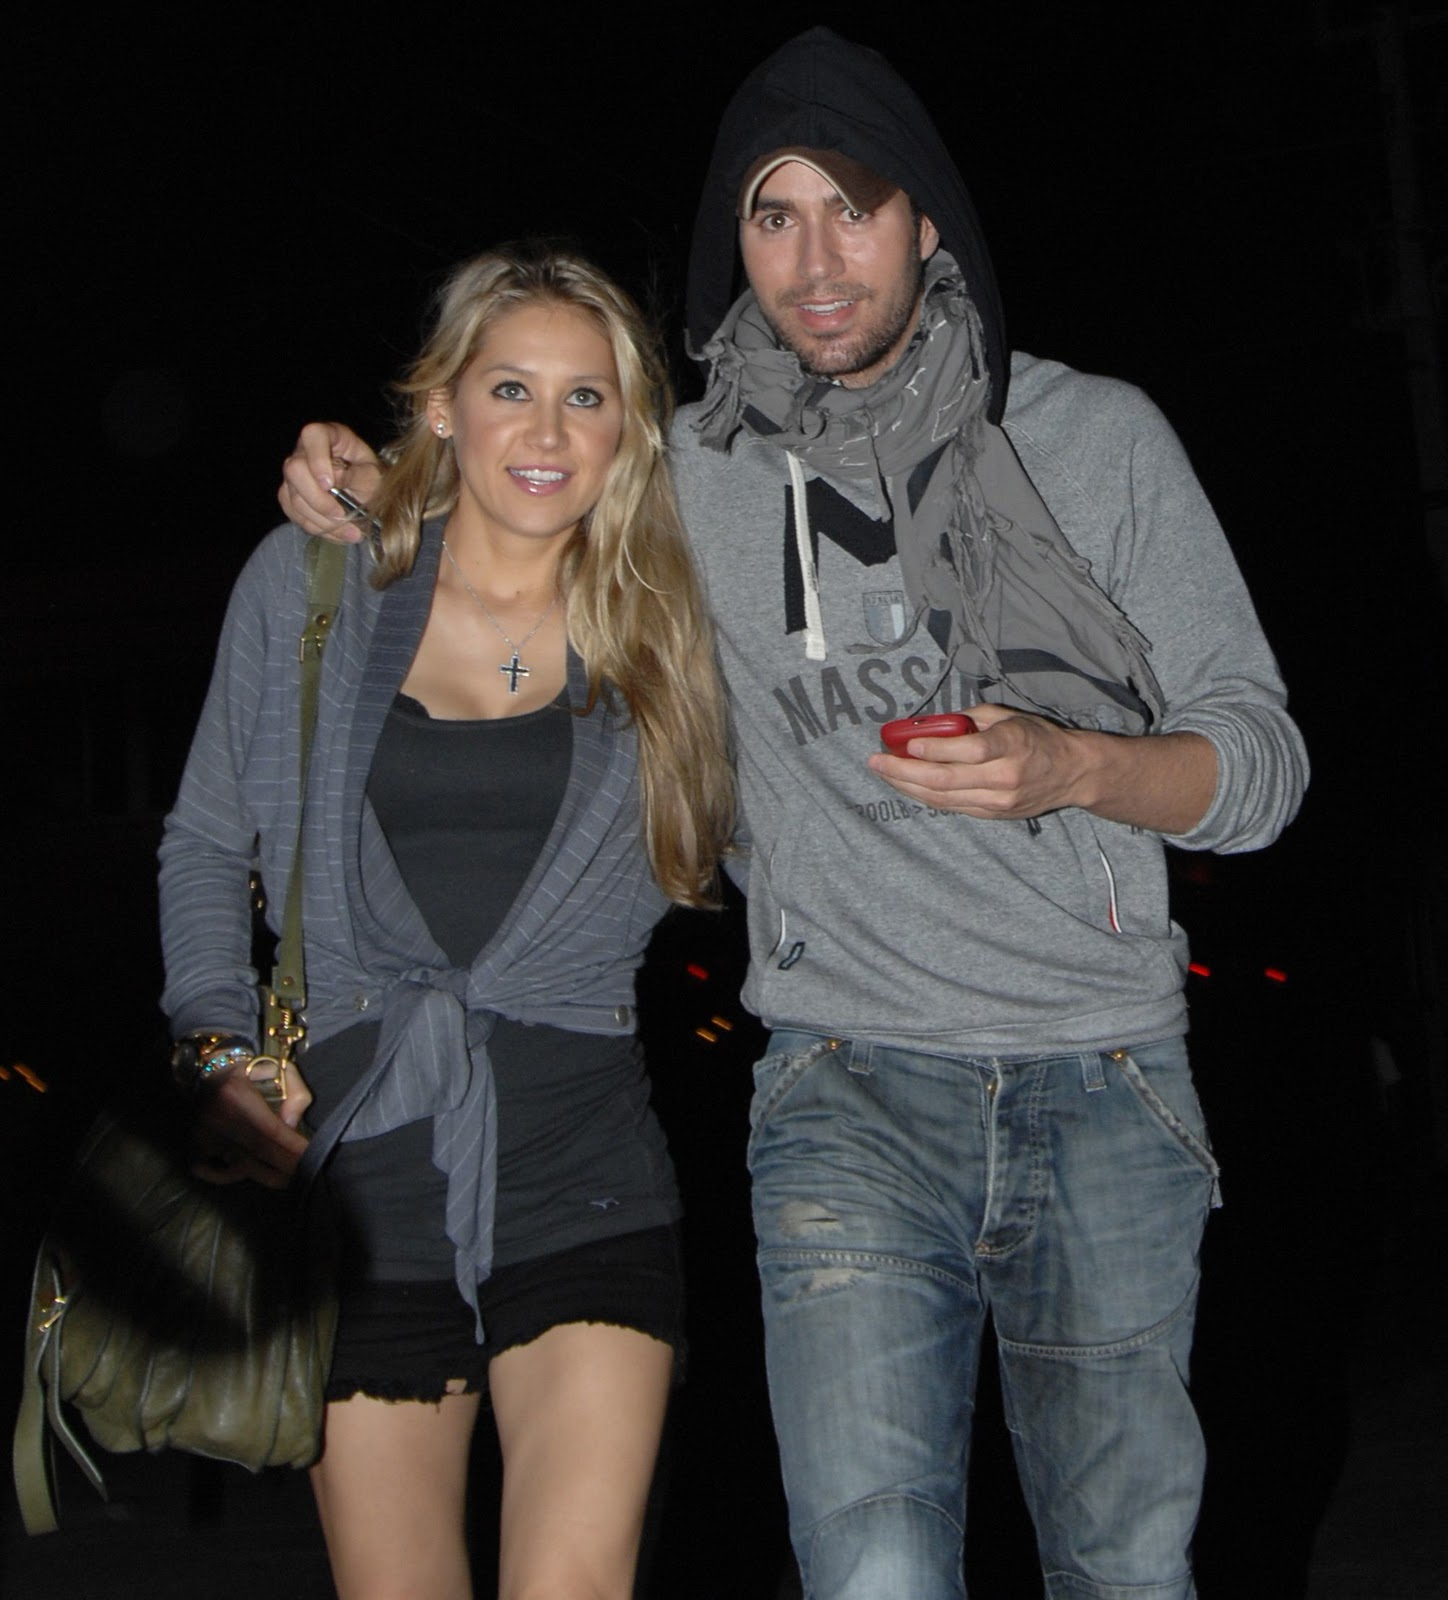 http://3.bp.blogspot.com/-KEaUQkTM2f4/TsC_hPAFvkI/AAAAAAAAEbY/1L3WN6gjmXI/s1600/26055_Anna_Kournikova_Leaving_the_South_Beach_Restaurant_in_Miami_Beach_November_12_2011_05_122_165lo.jpg